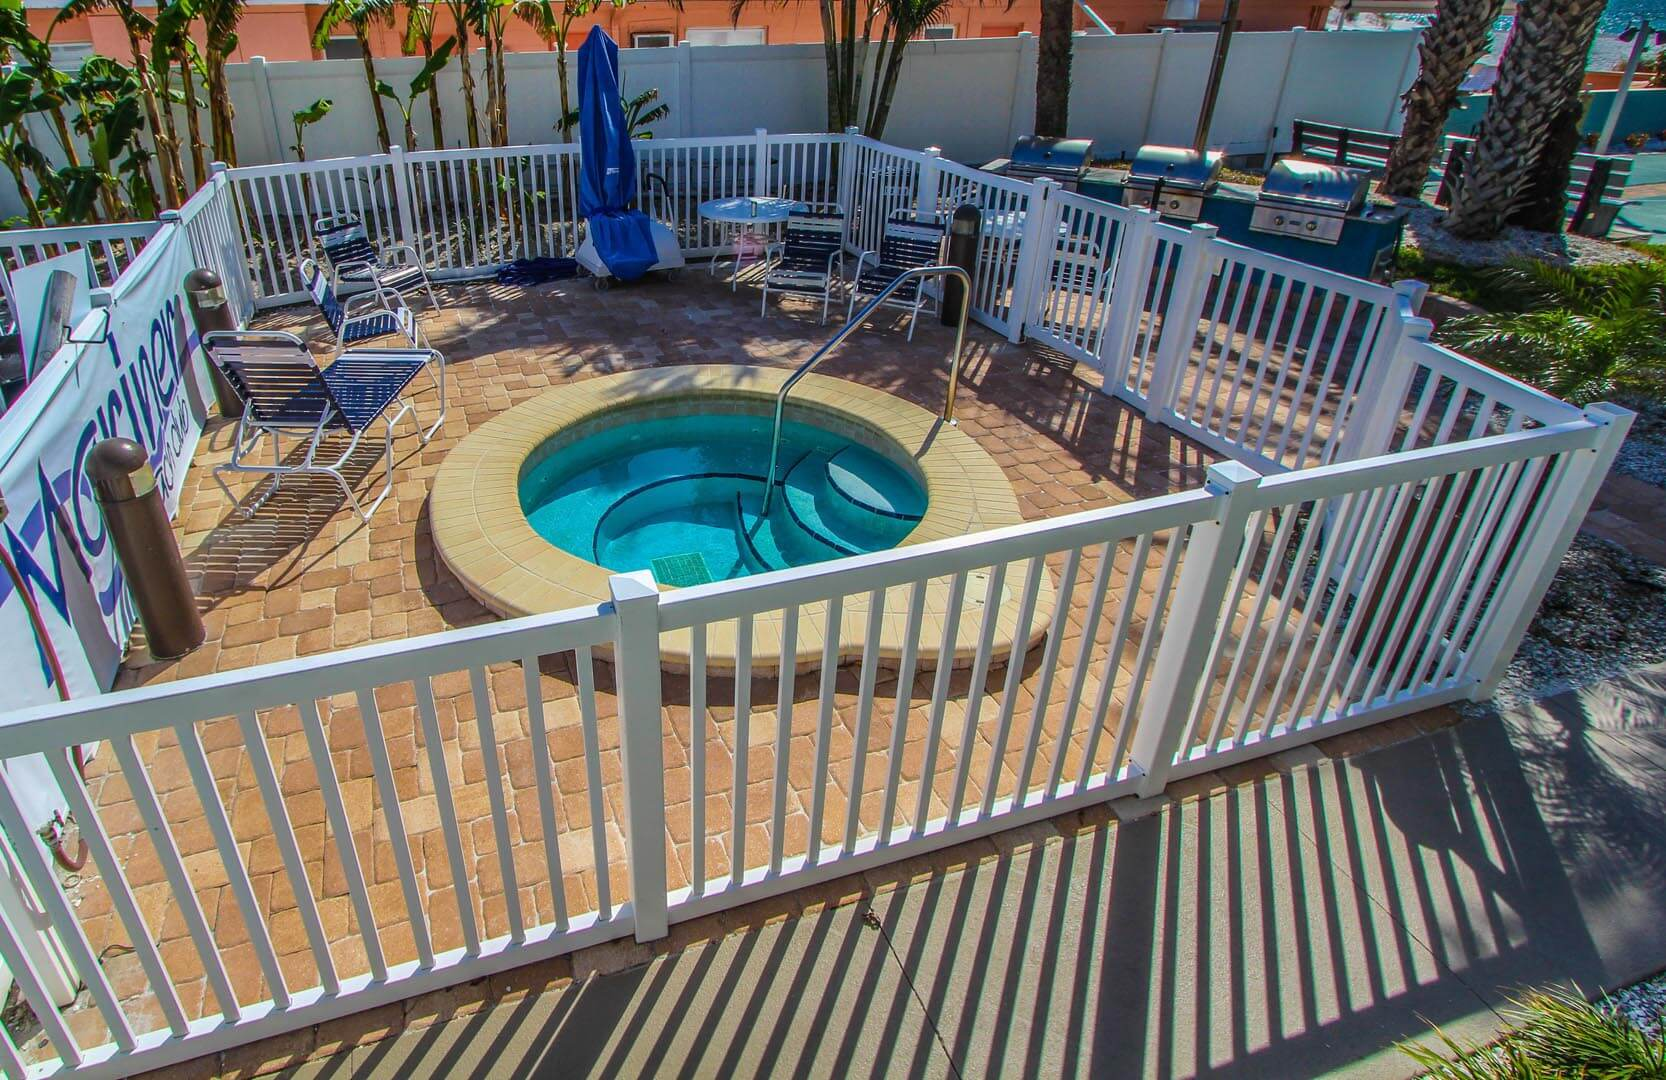 The outside Jacuzzi tub at VRI's Mariner Beach Club in St. Pete Beach, Florida.